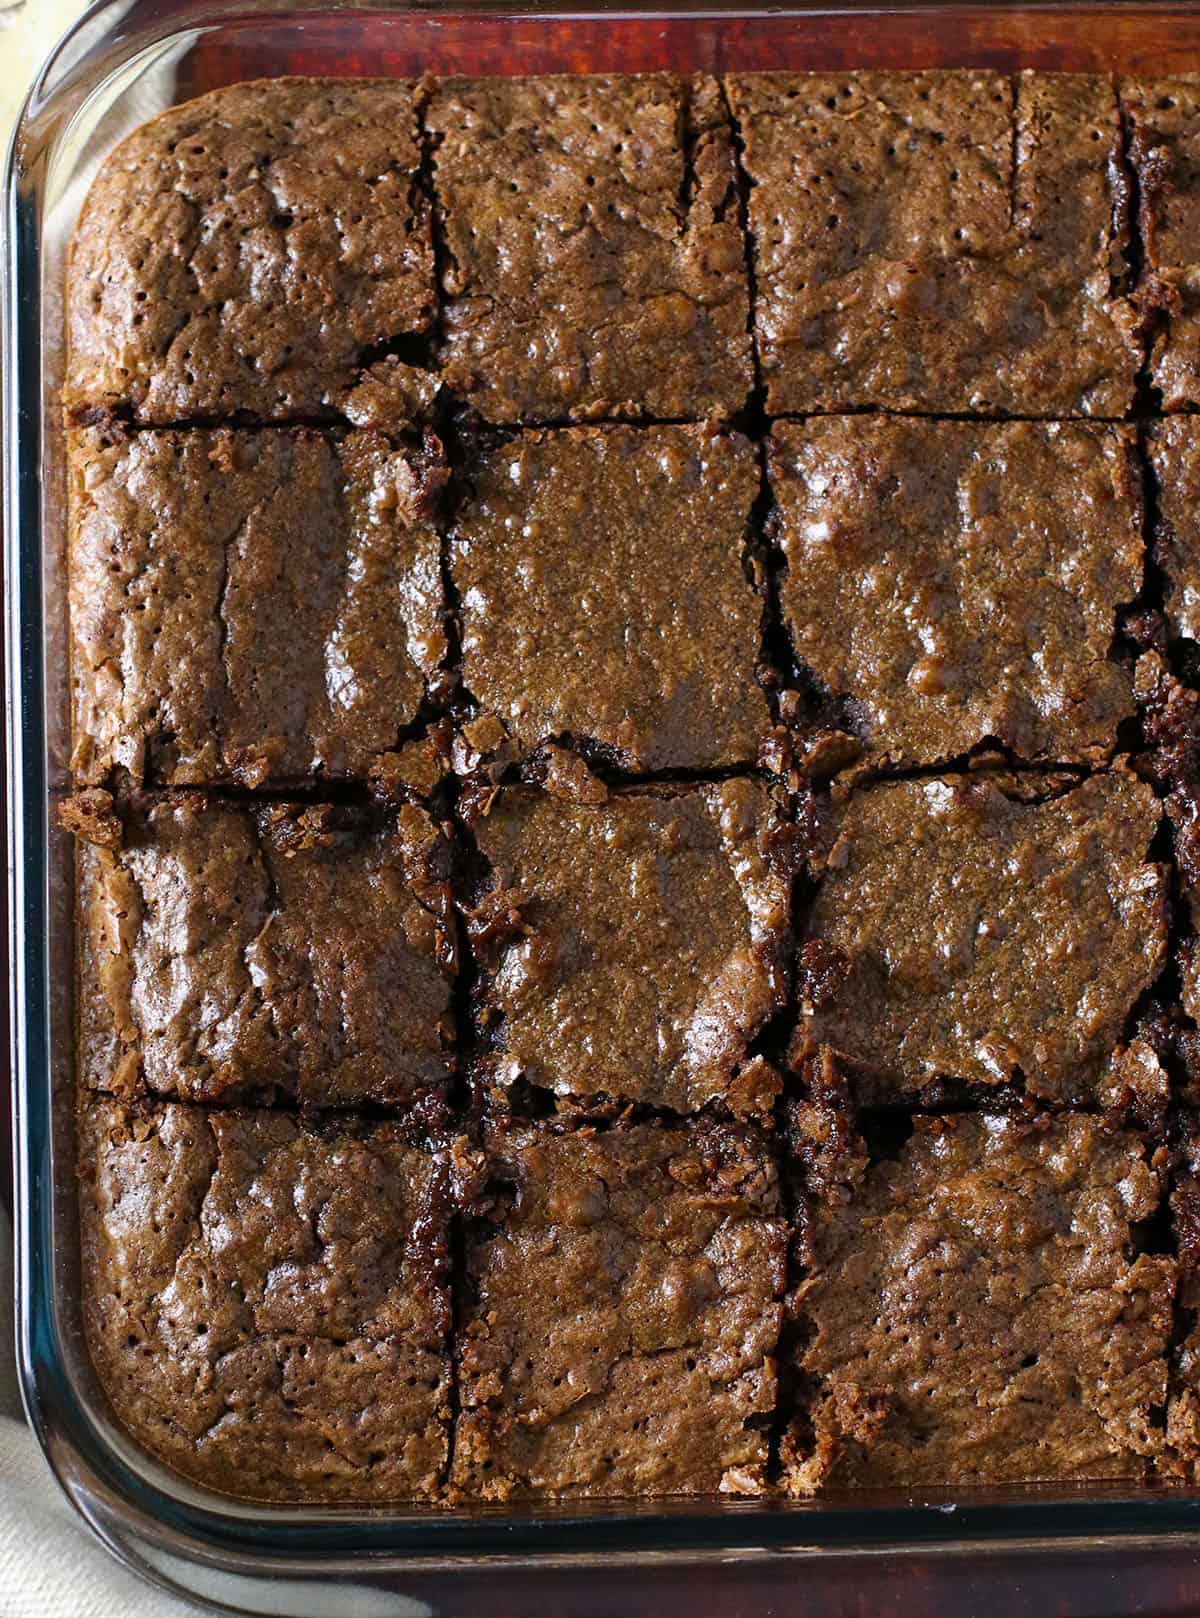 A pan of freshly baked brownies, sliced into squares.